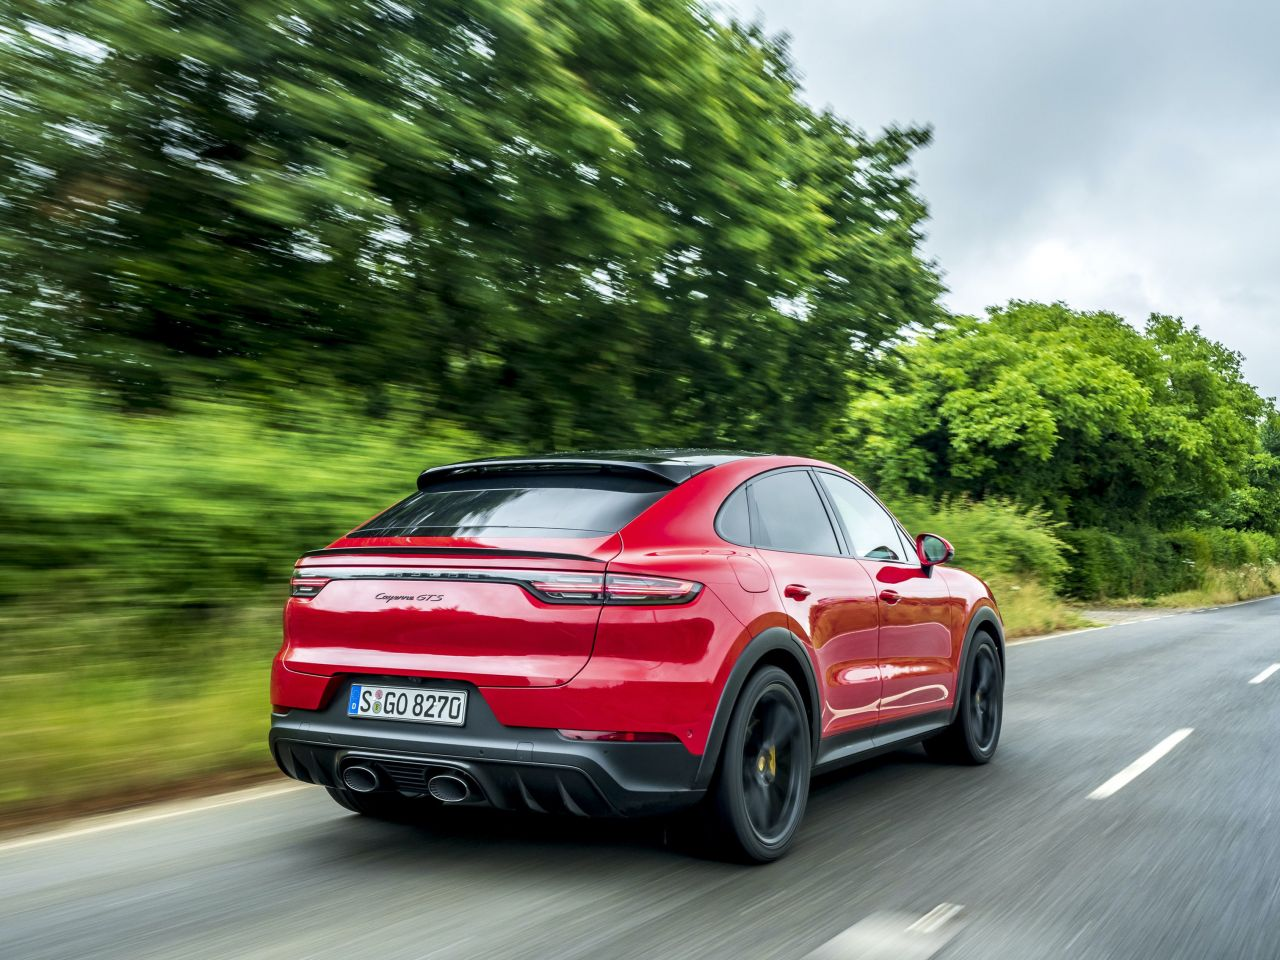 First Drive Porsche Cayenne Gts Coupe The Portugal News